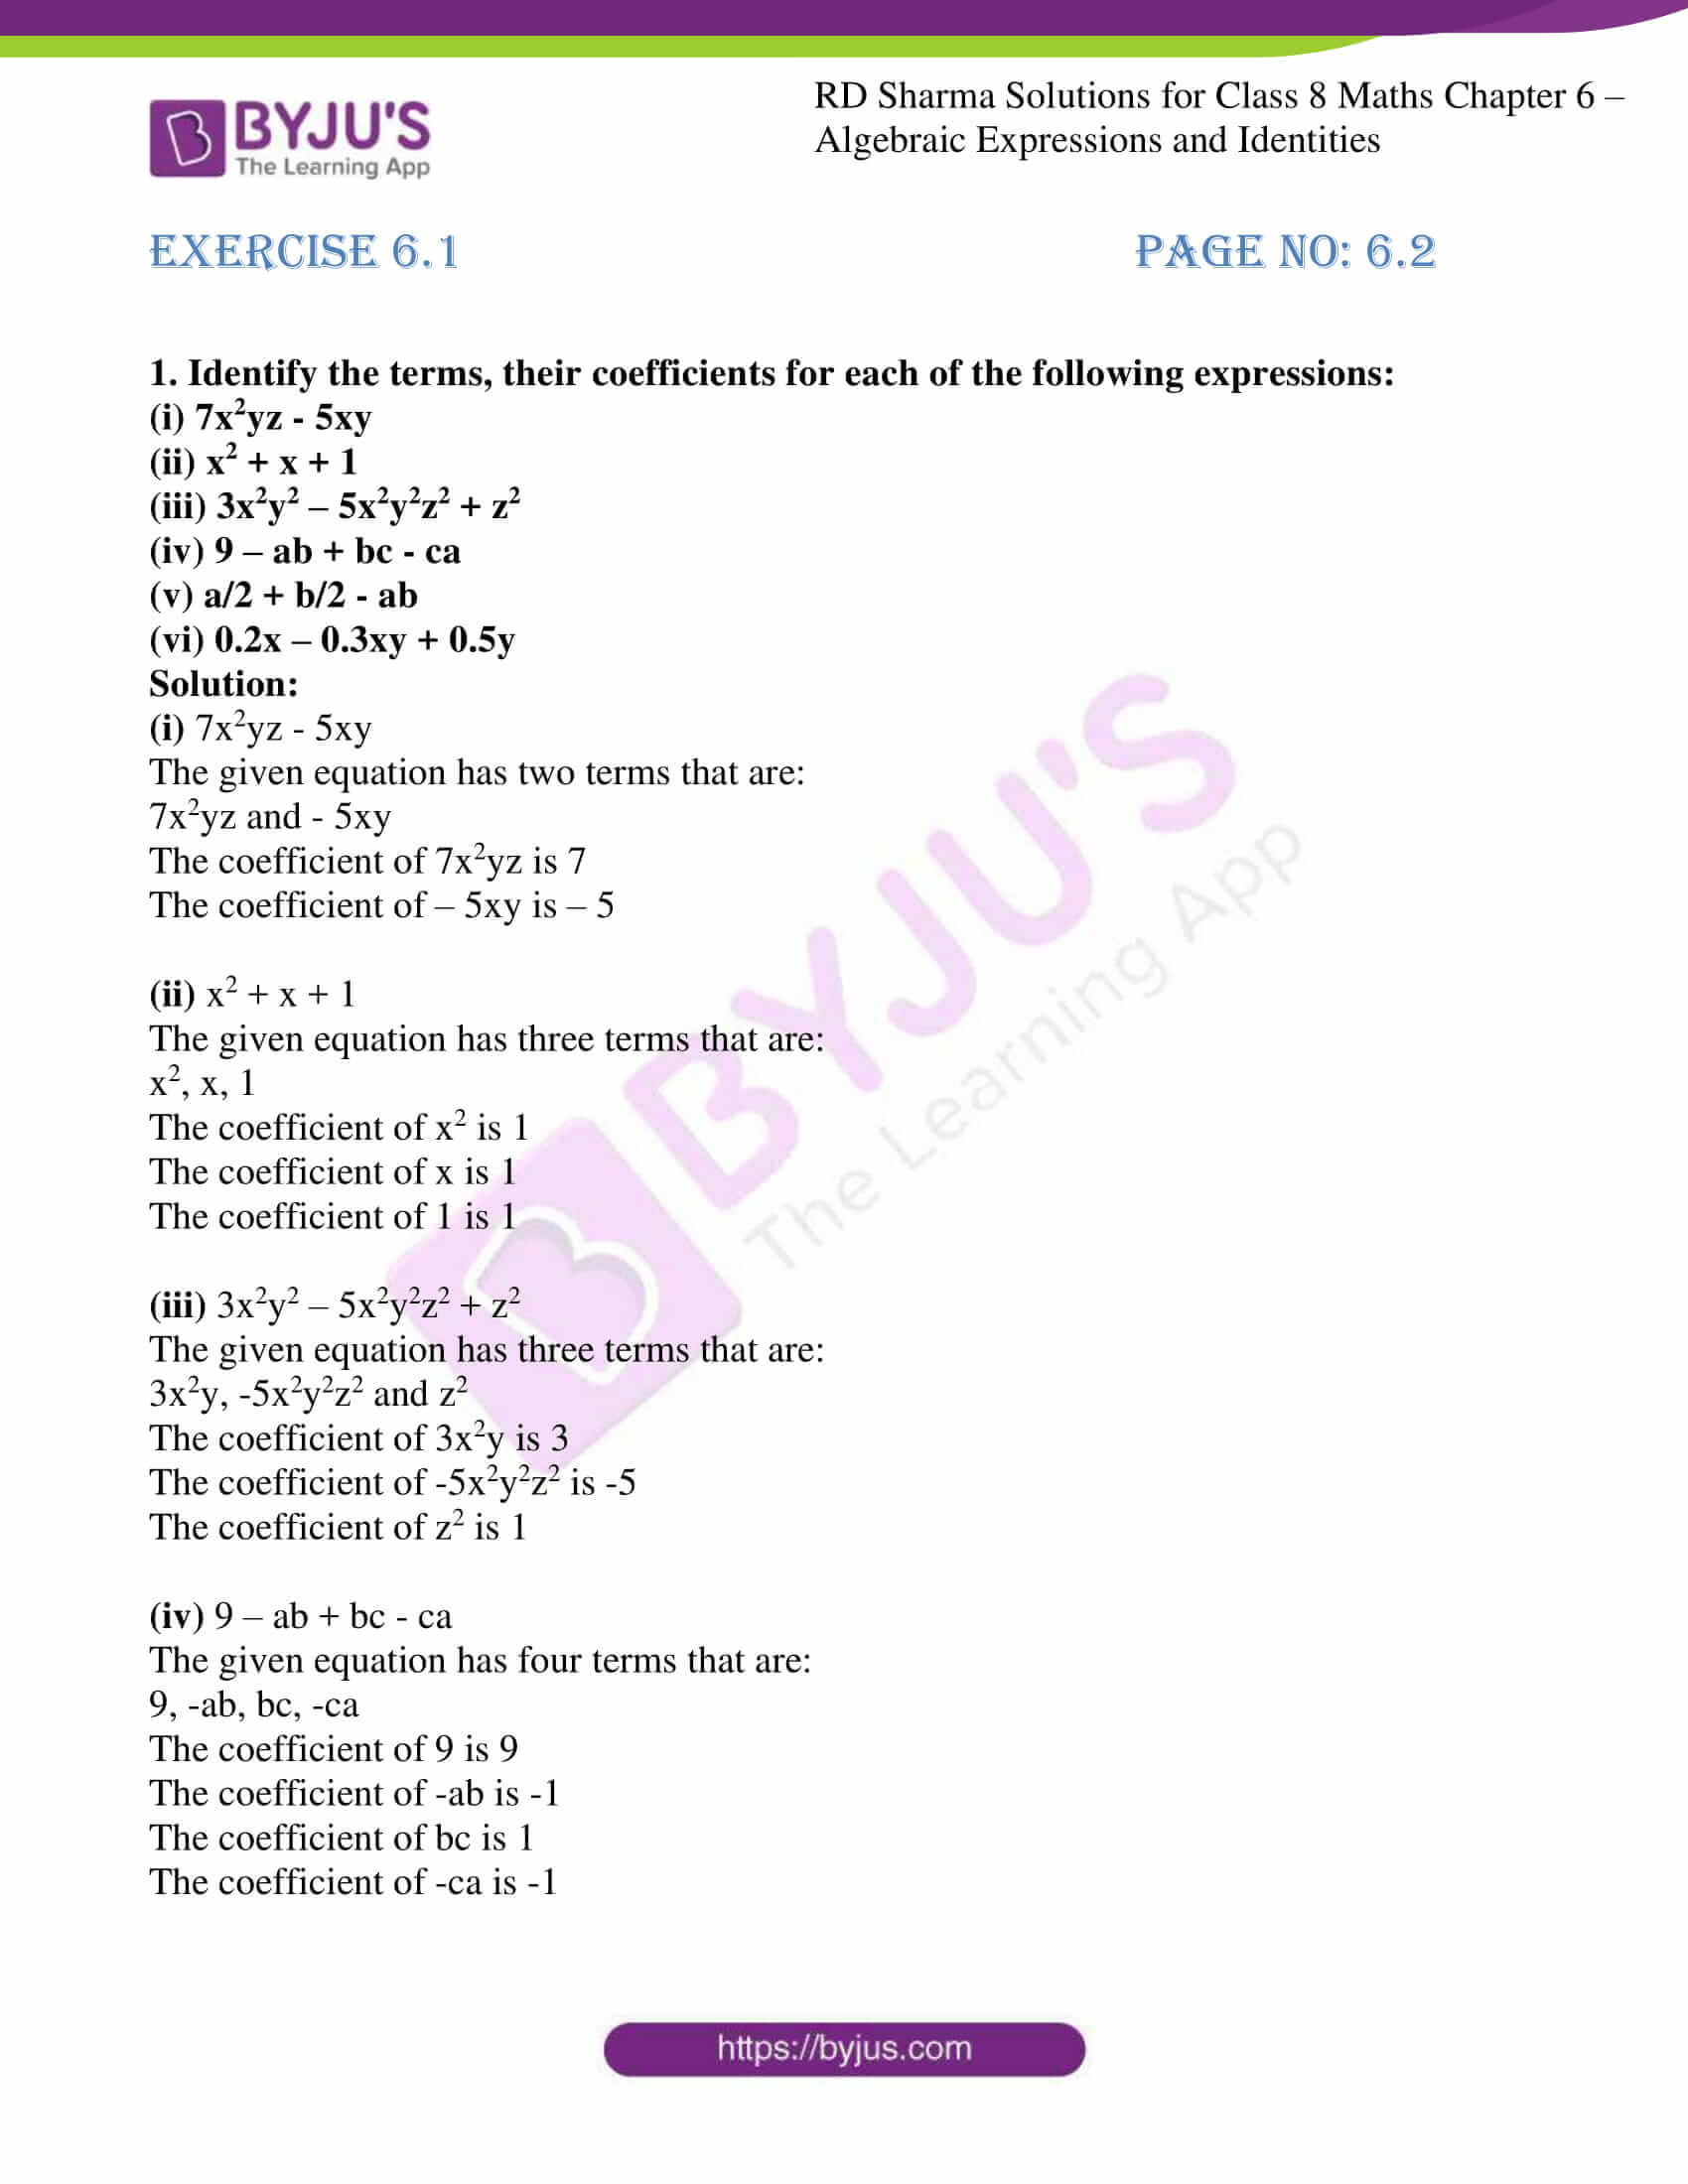 rd sharma class 8 maths chapter 6